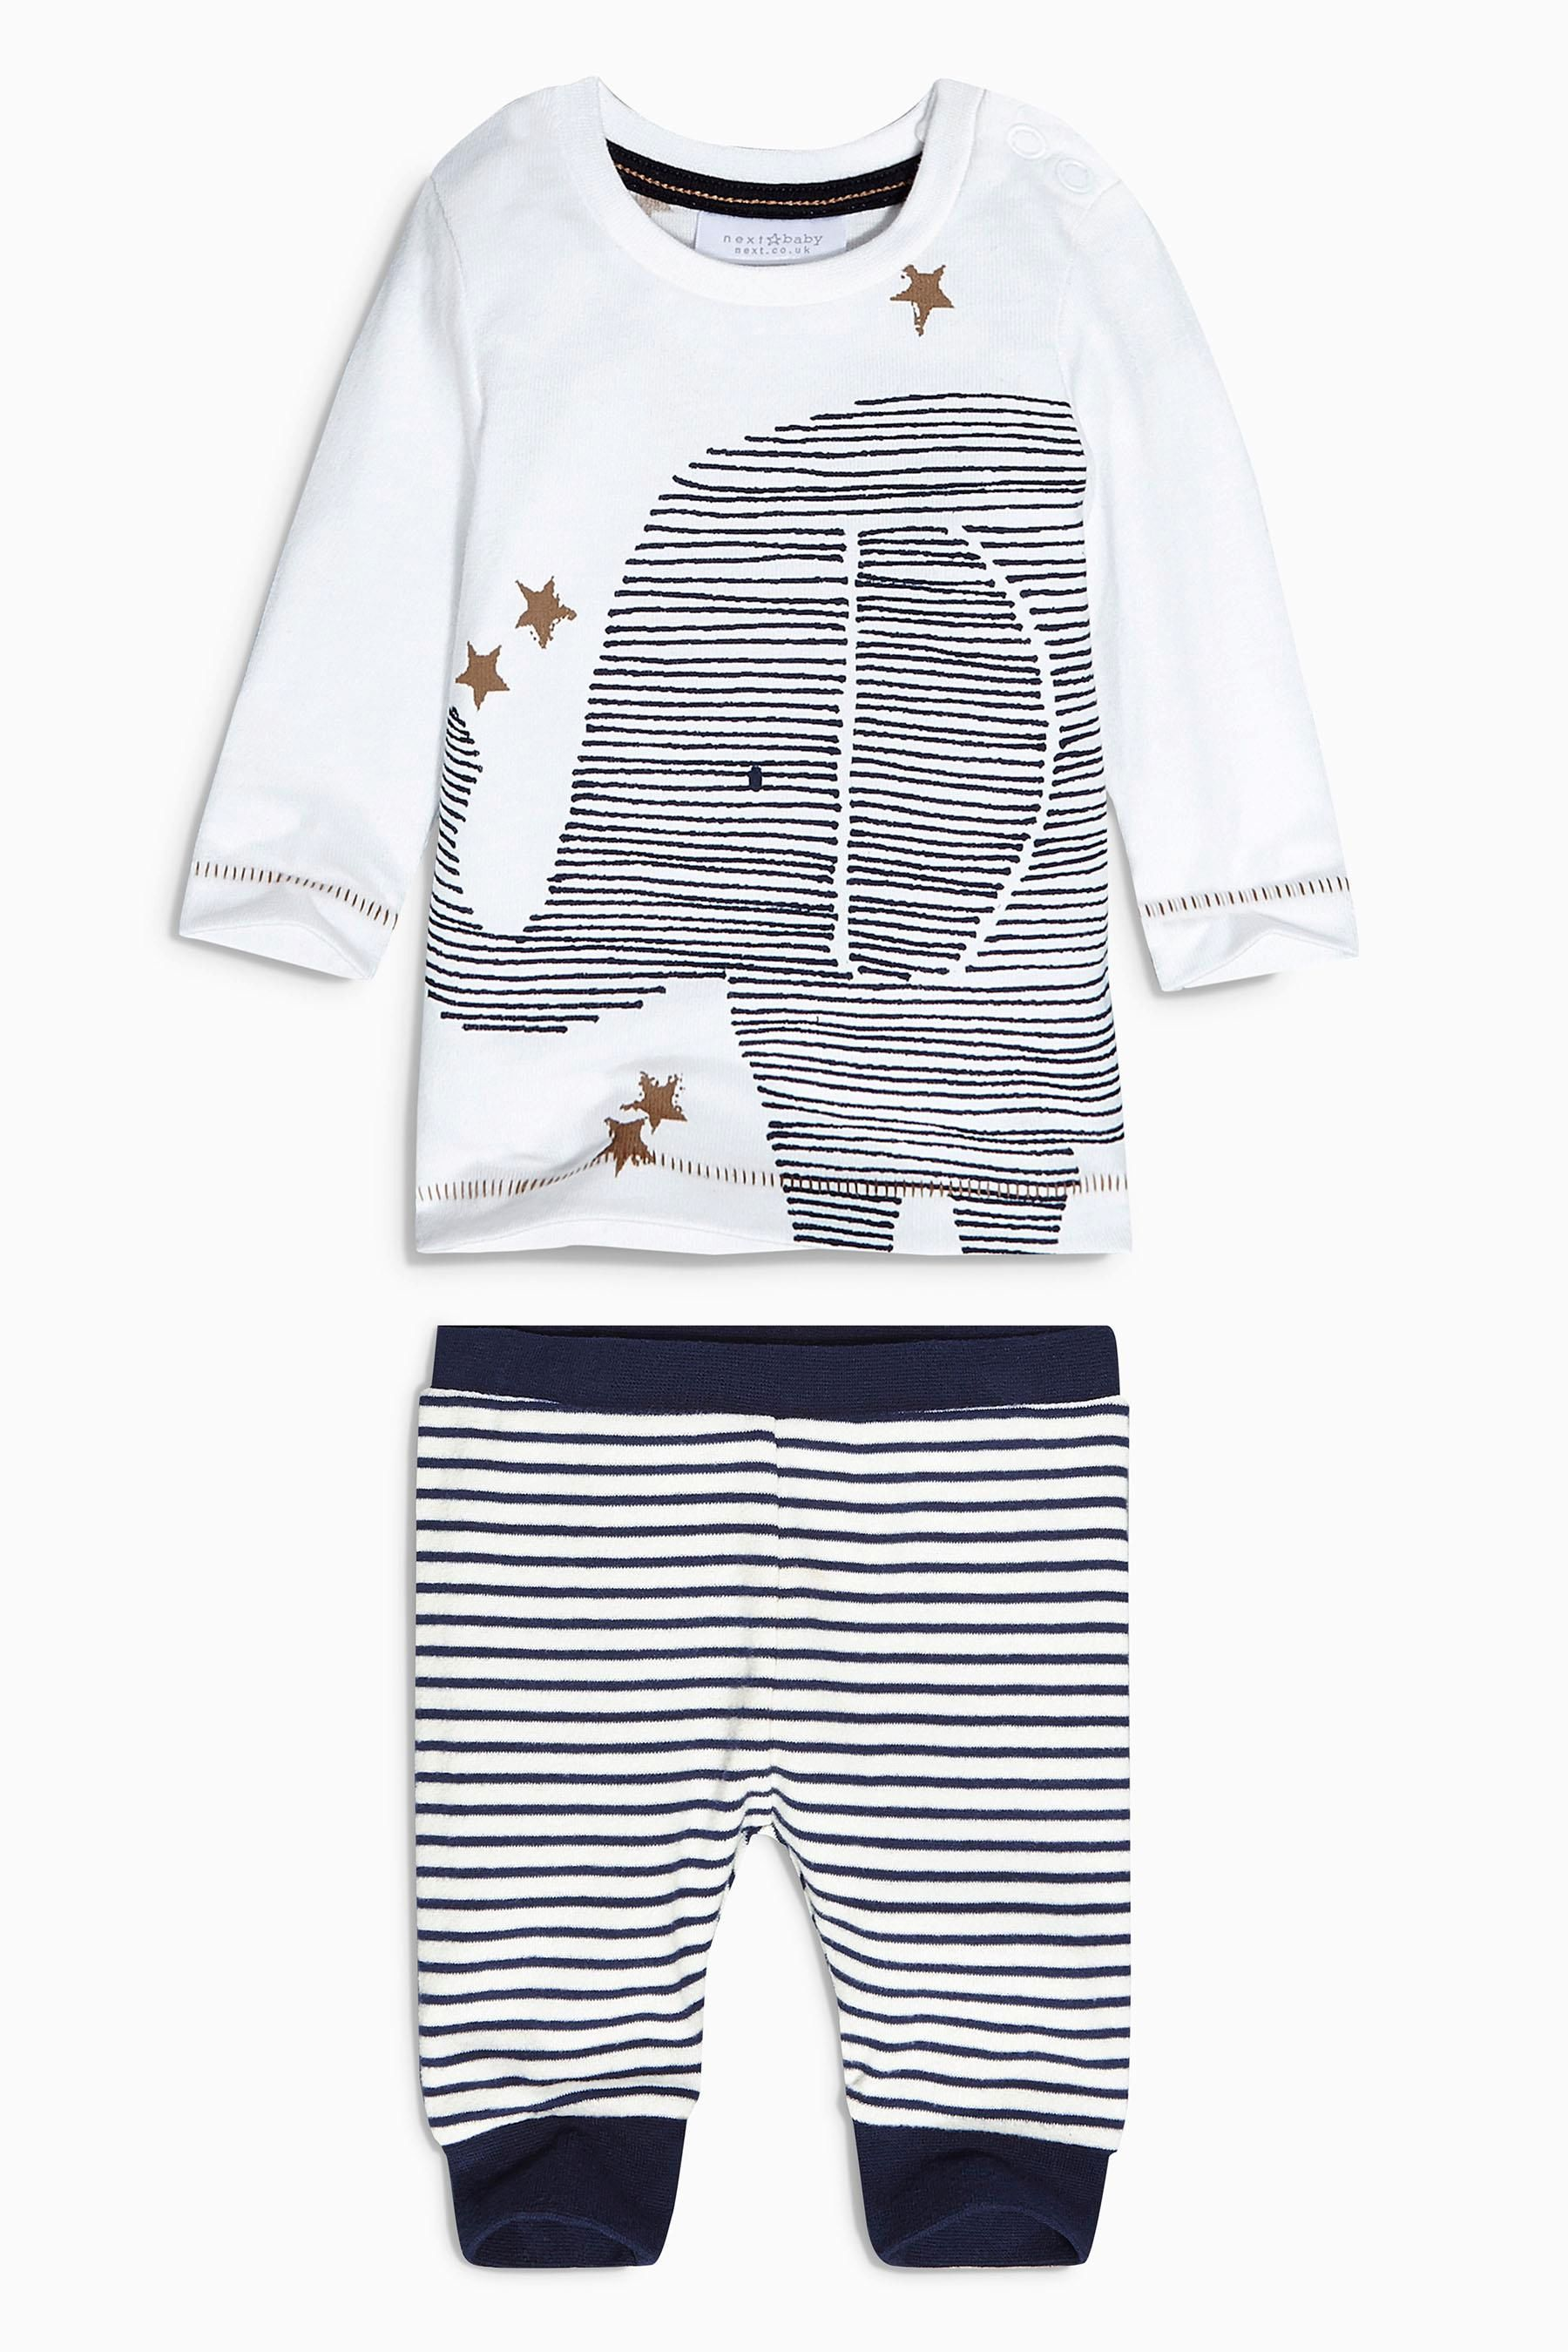 Buy Elephant Two Piece Set 0 18mths from the Next UK online shop